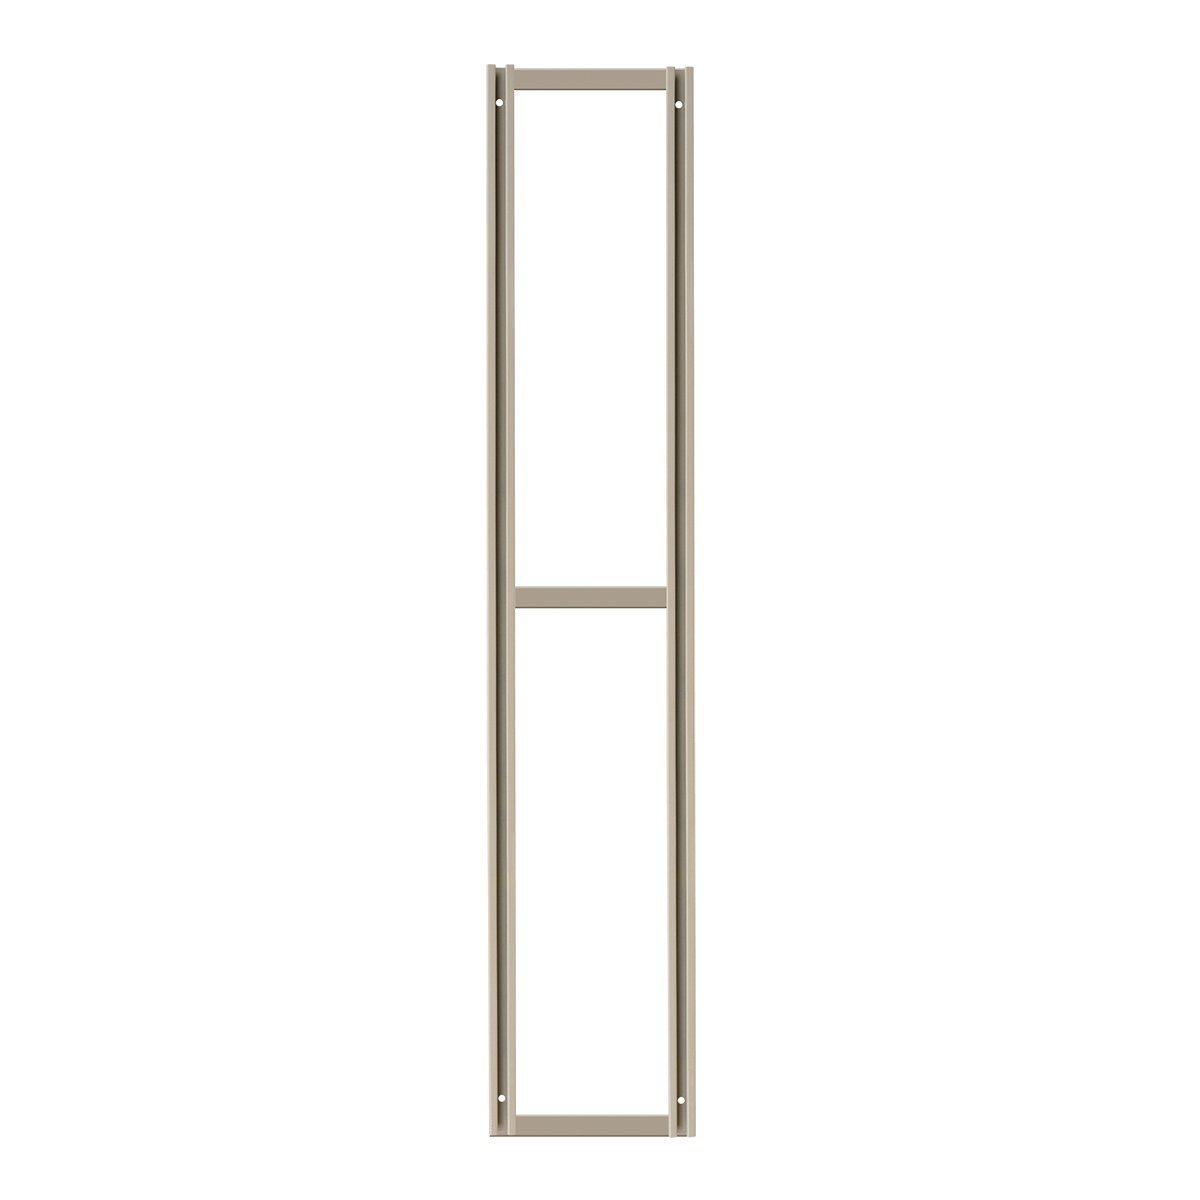 Akro-Mils TV70F 70-Inch Tall Wall Mounting Frame for TiltView Horizontal Plastic Storage System, Beige by Akro-Mils